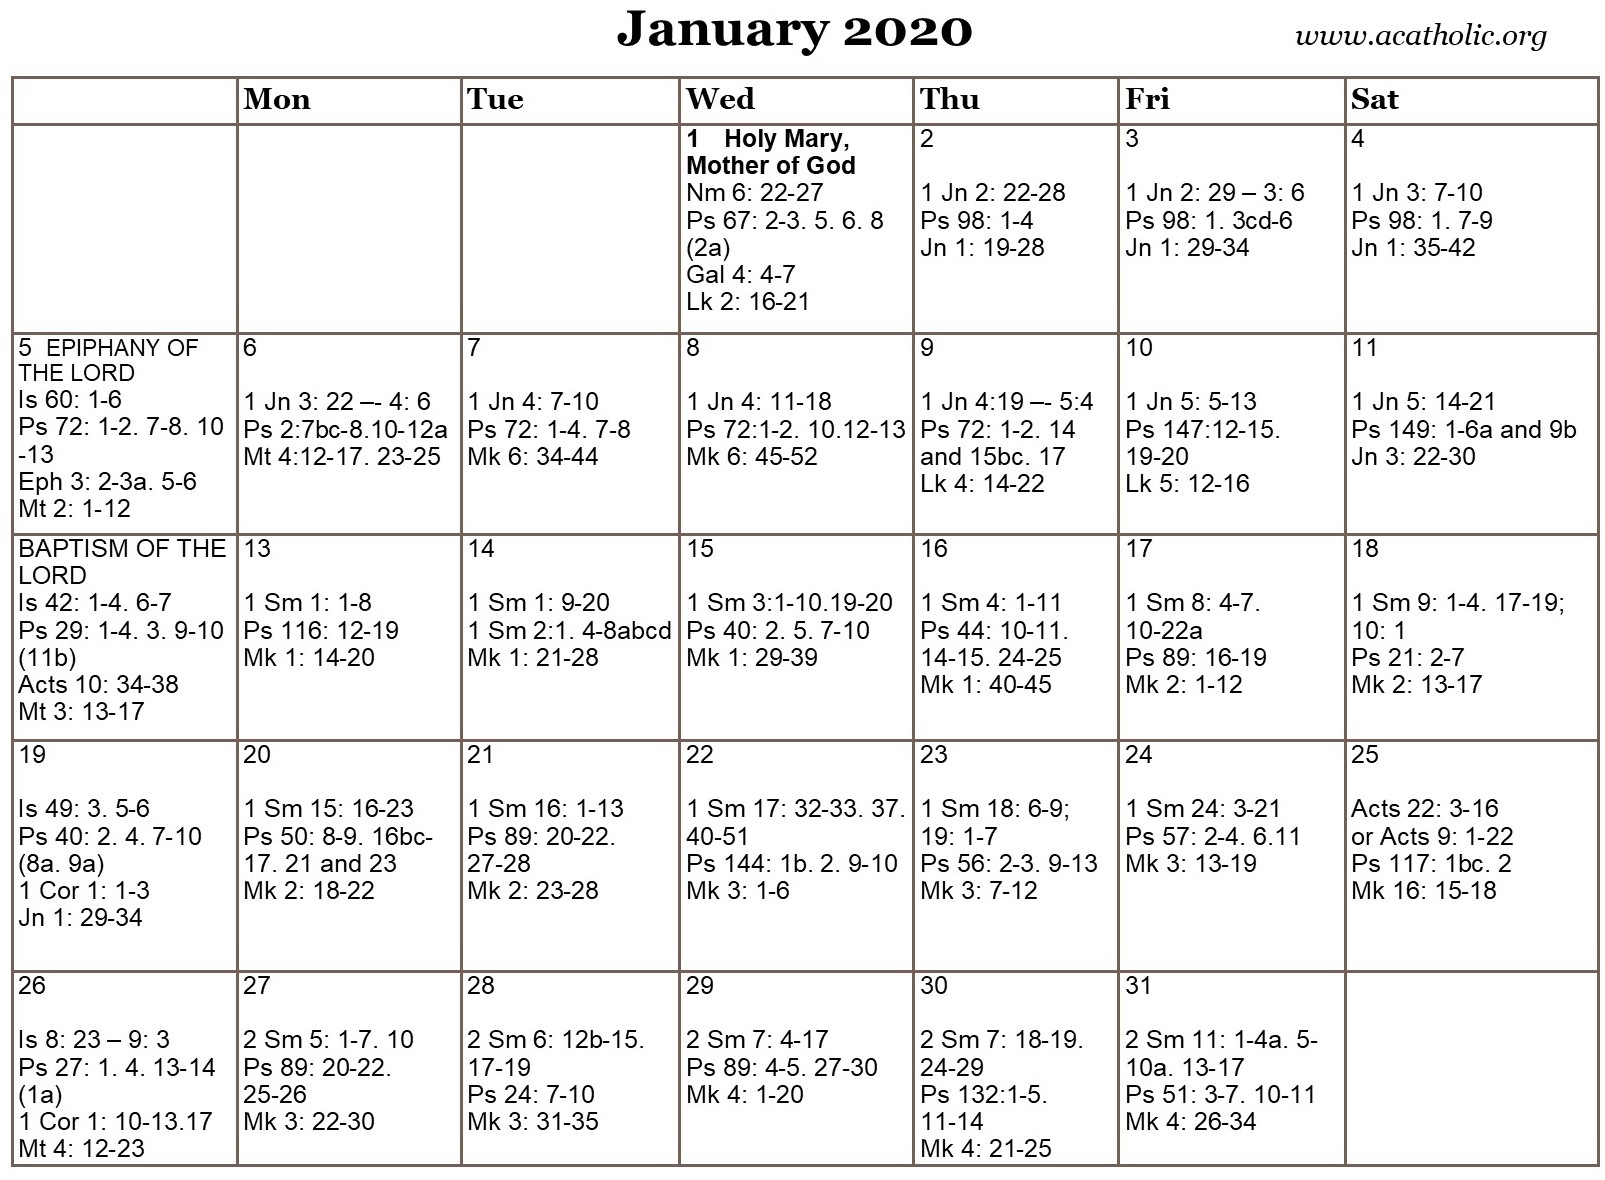 Monthly Calendar Of The Catholic Daily Mass Readings intended for Catholic Lectionary 2020 Printable Calendar